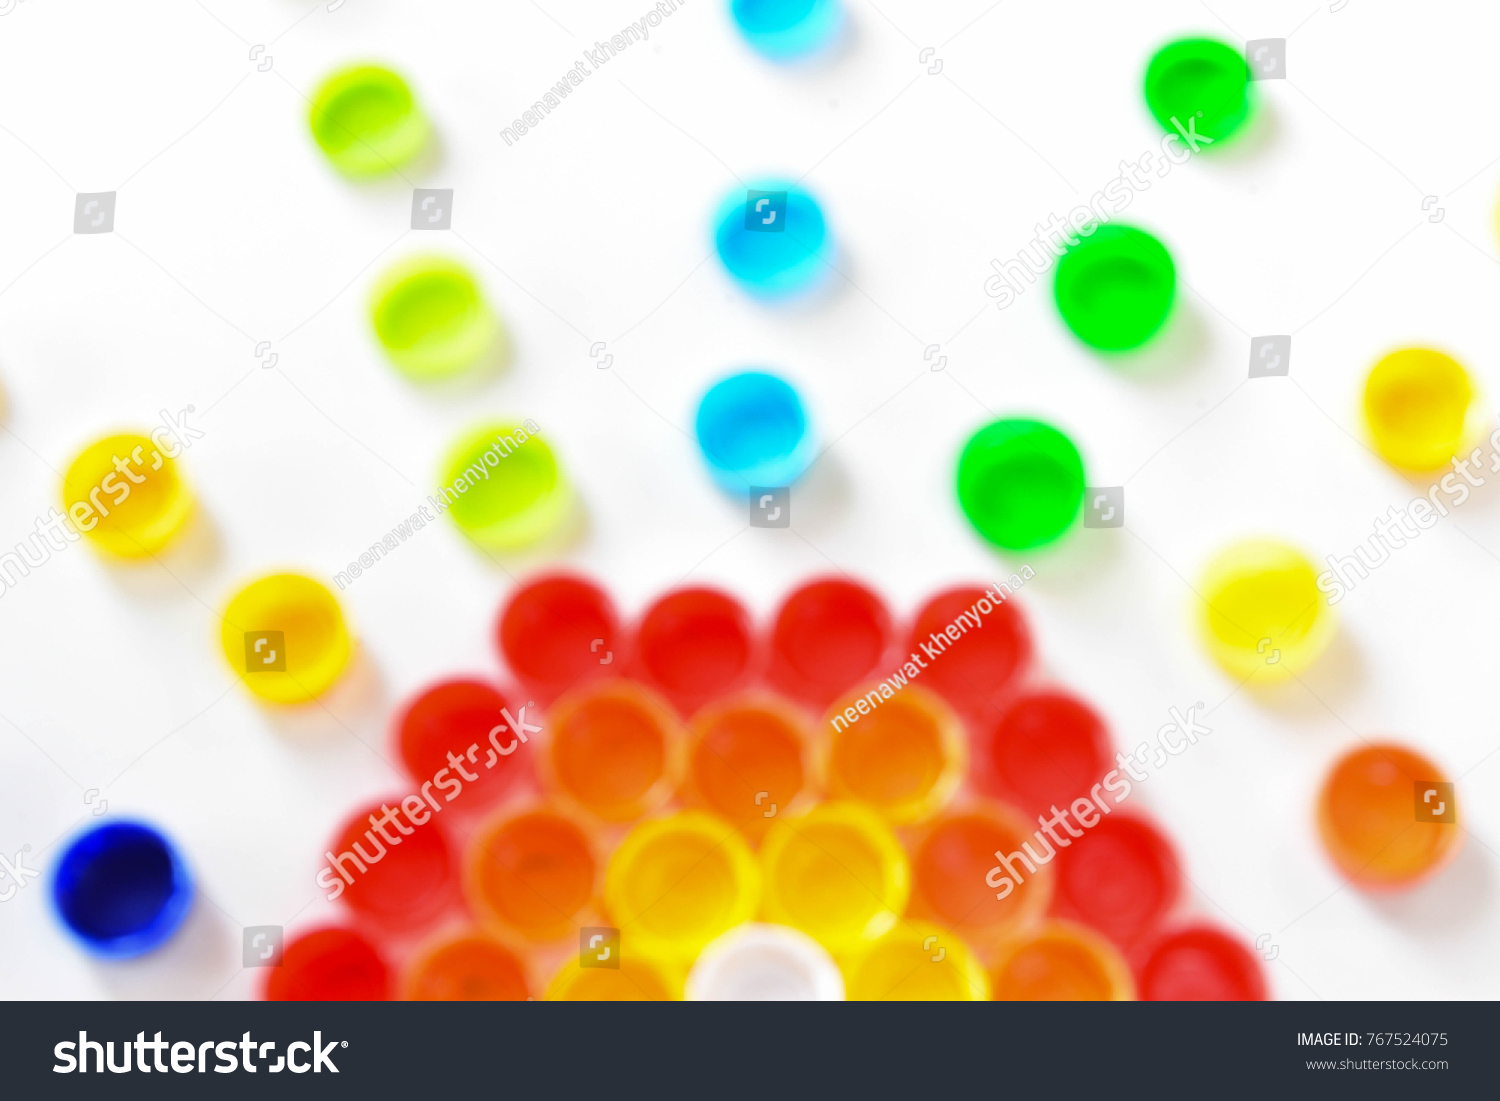 Production Instructional Media Arts Counting Design Stock Photo Edit Now 767524075